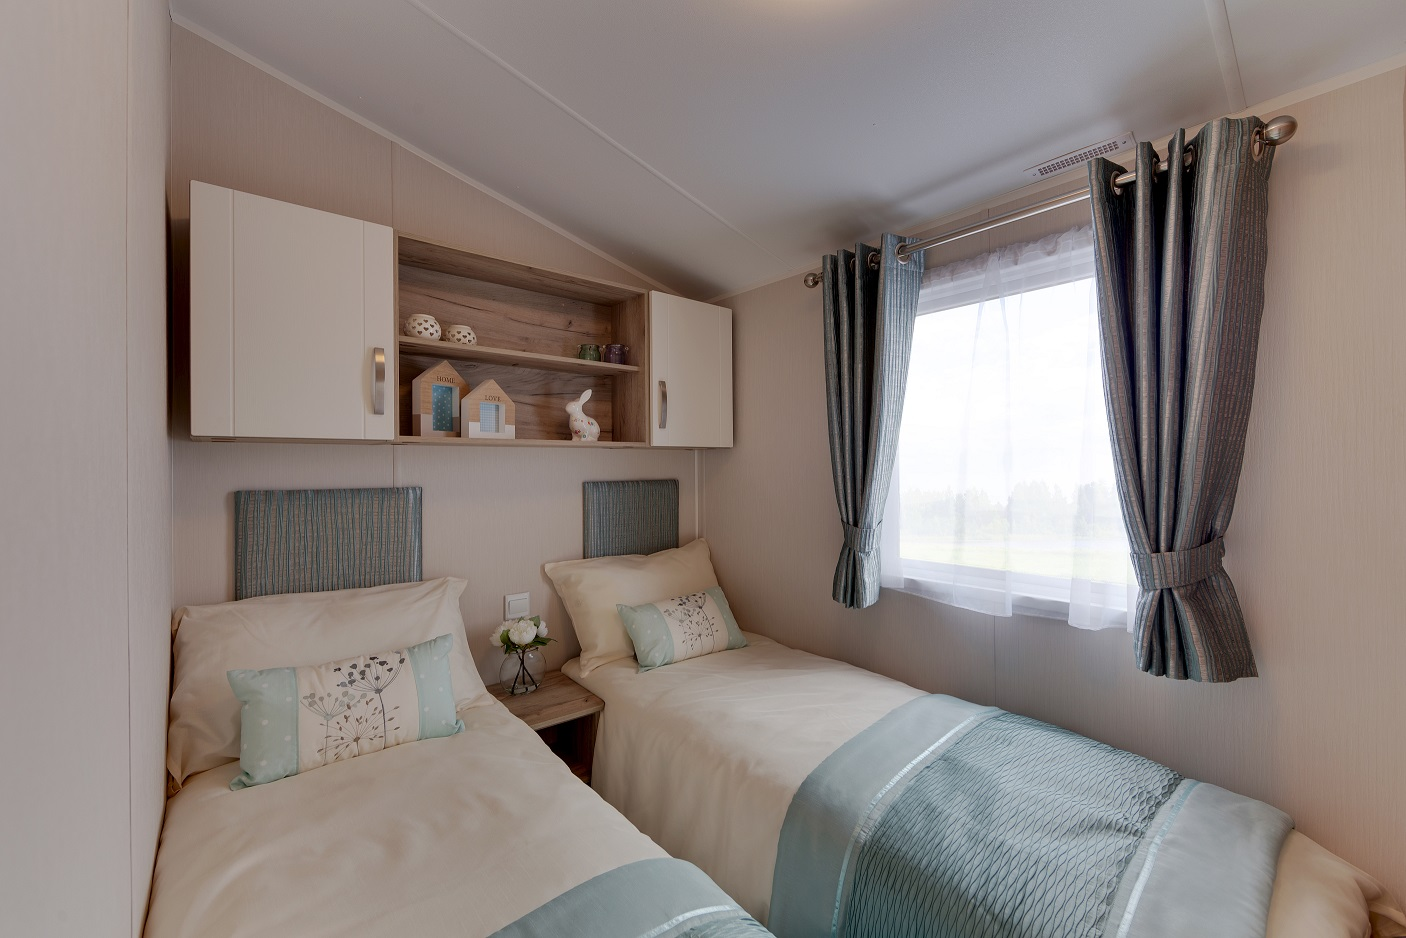 Willerby Skye: Static Caravans and Holiday Homes for Sale on Caravan Parks, Harrogate, North Yorkshire Image 3